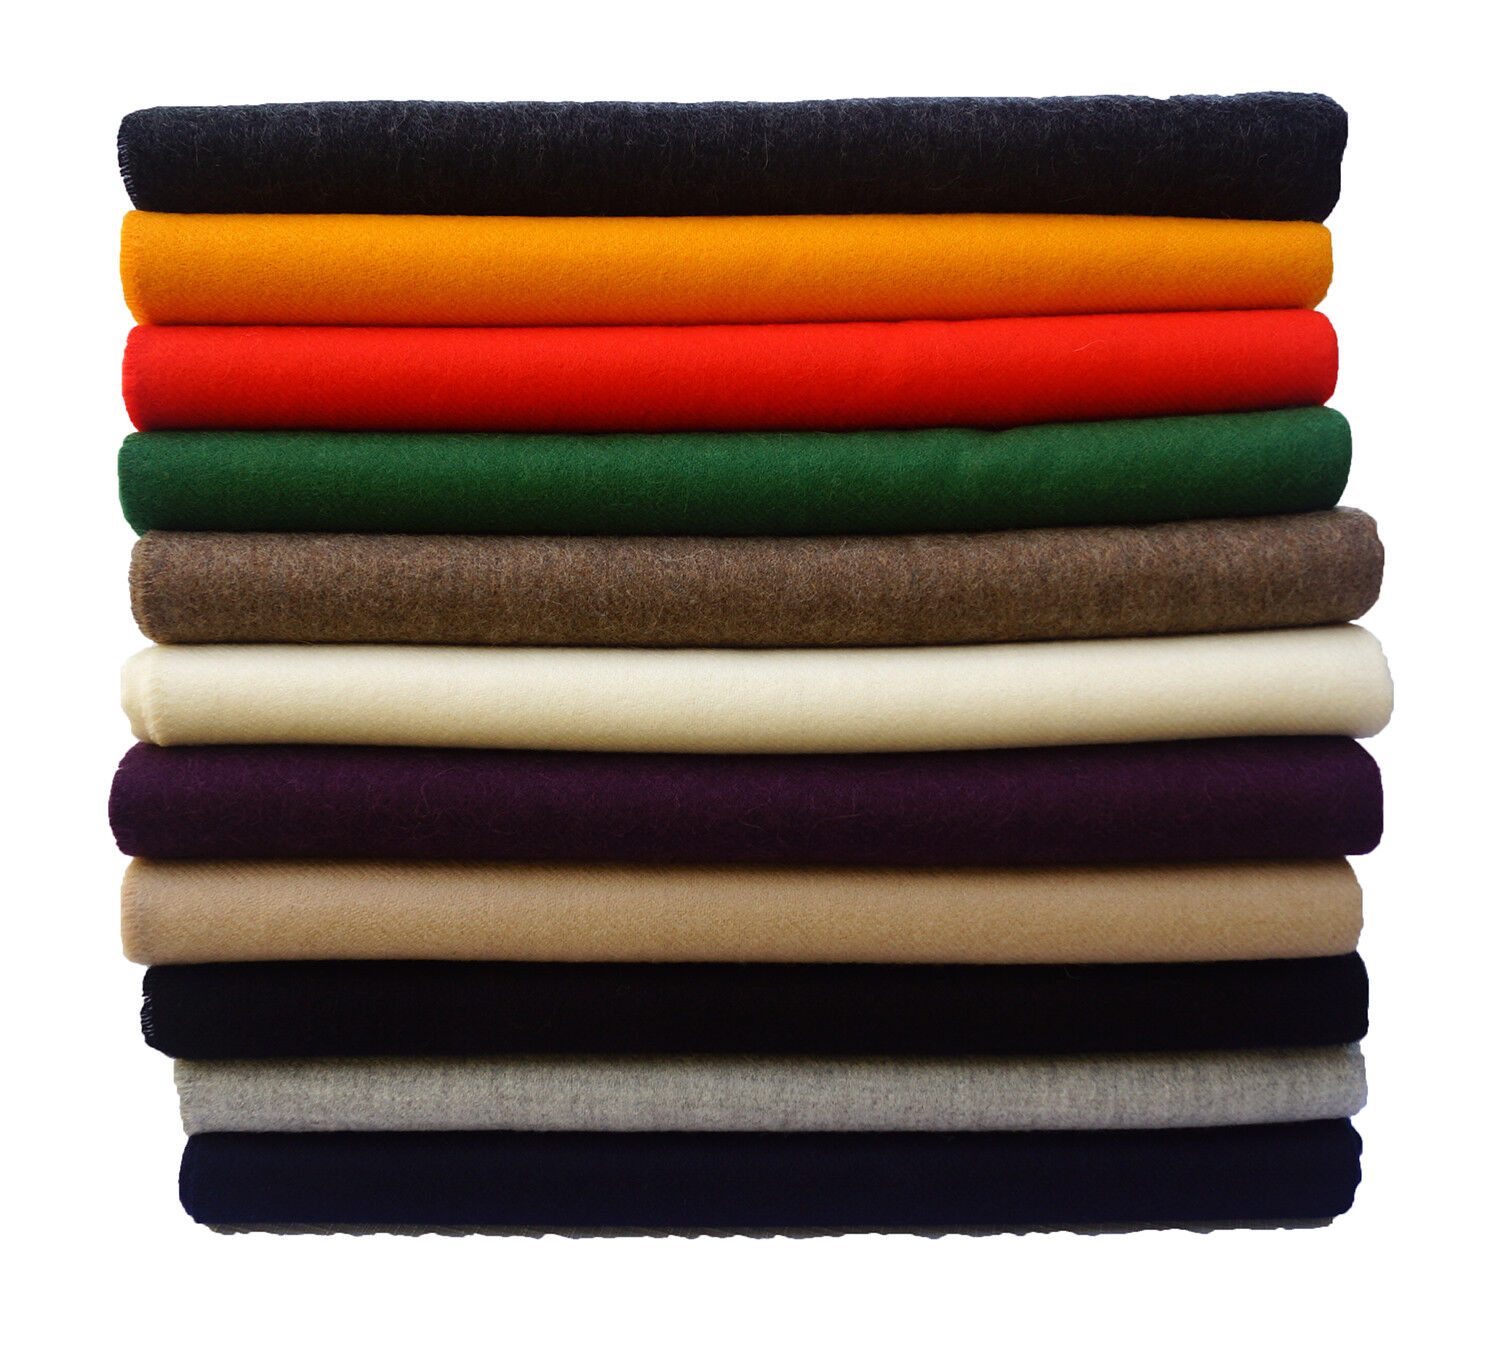 100% Baby Alpaca Throw Blankets - Solid Color II Throws, All